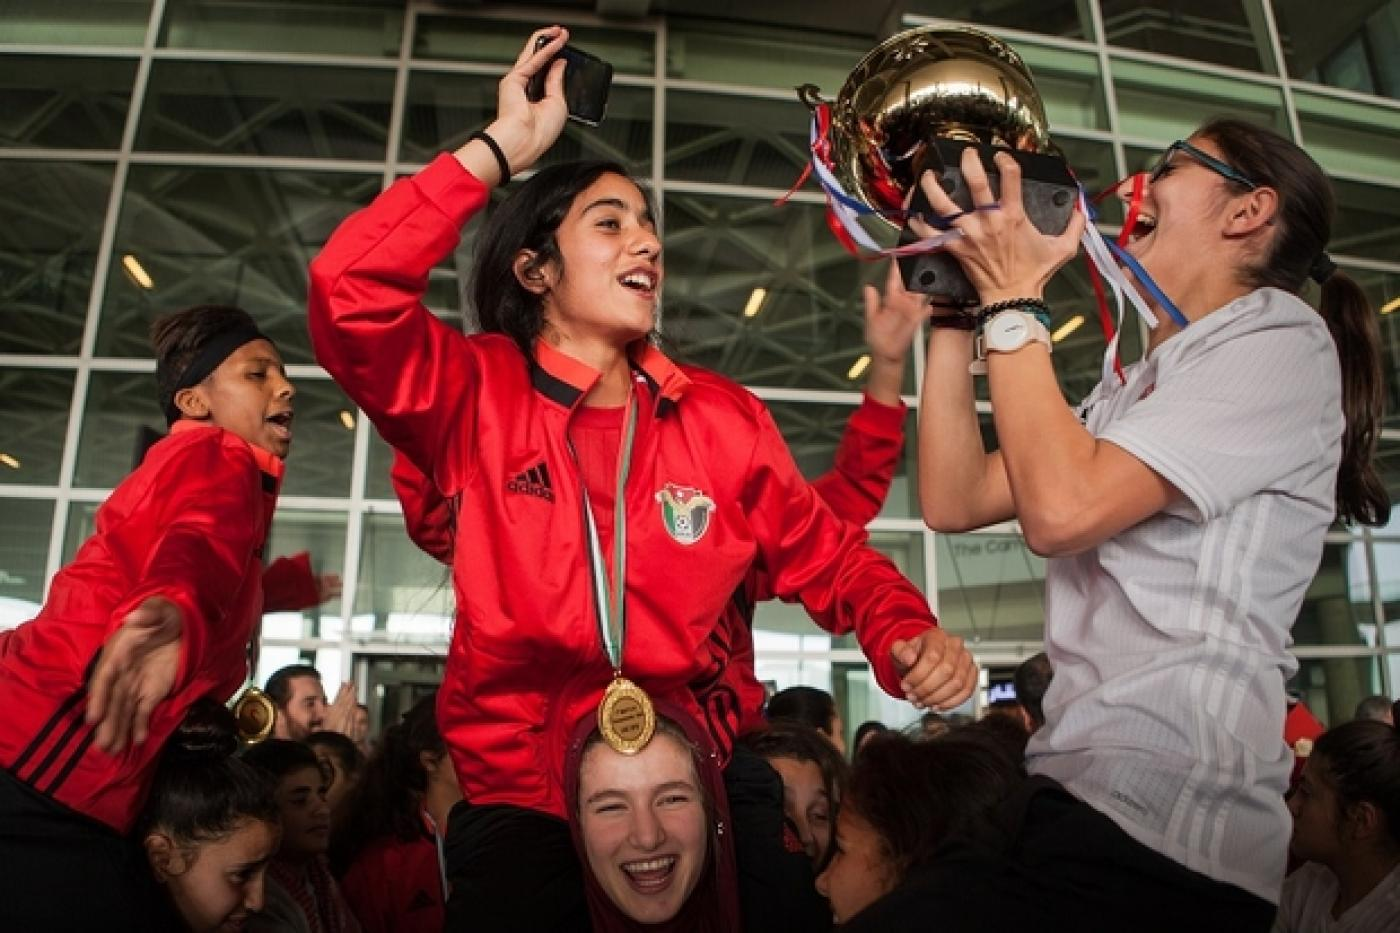 Eyes on the prize: Jordanian girls set their sights on